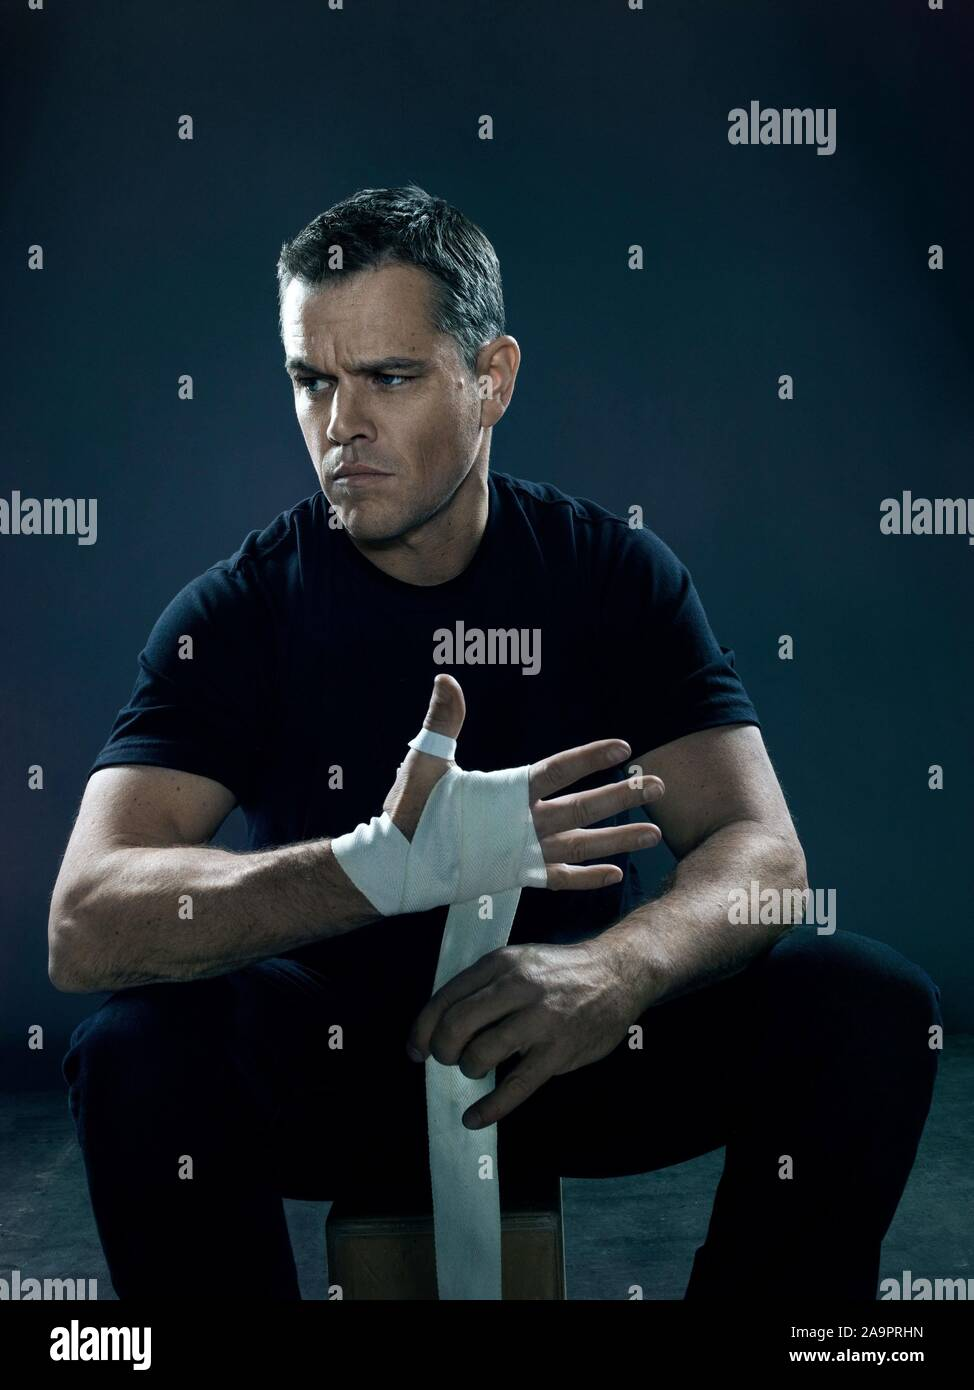 Matt Damon In Jason Bourne 2016 Directed By Paul Greengrass Credit Universal Pictures Thekennedy Marshall Company Captivate Ent Album Stock Photo Alamy